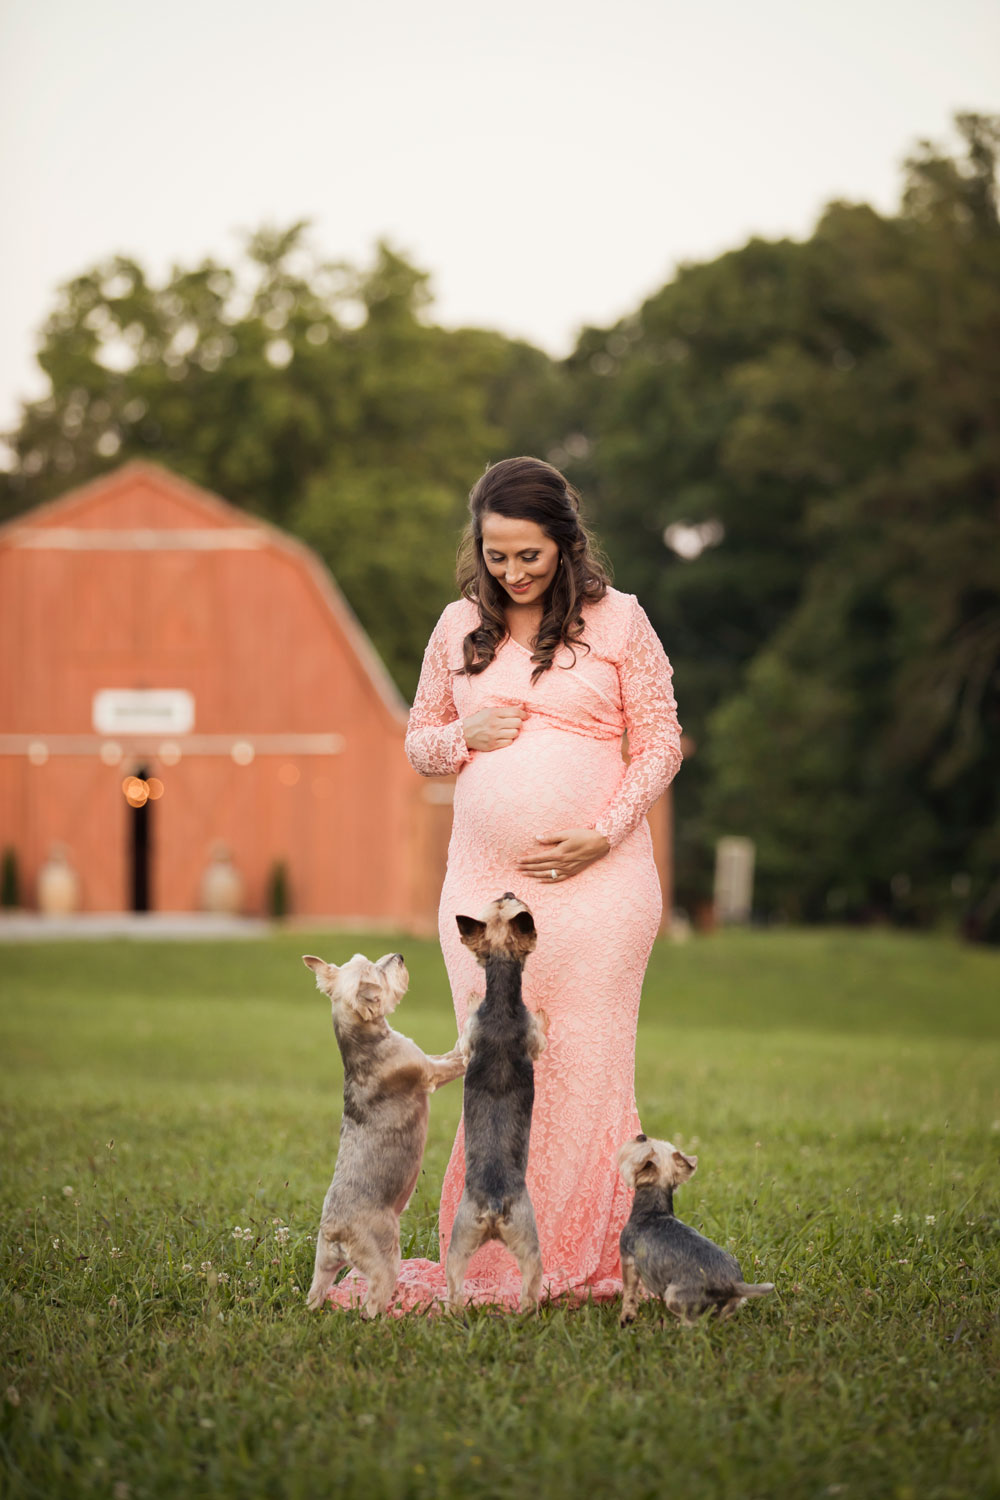 knoxville-maternity-photographer-red-barn-puppies.jpg